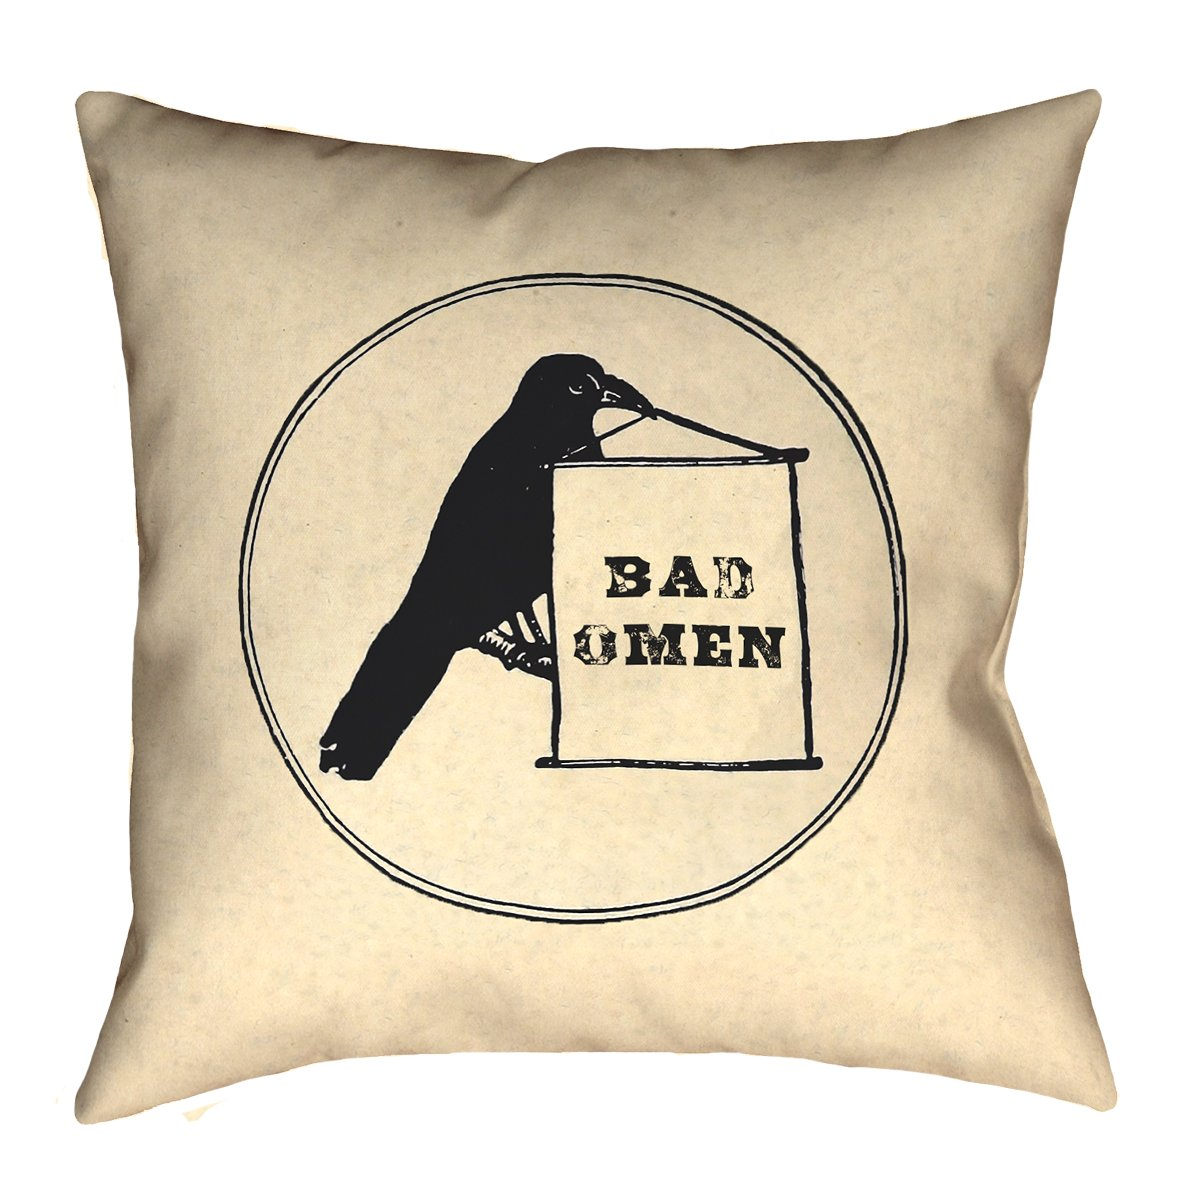 ArtVerse Katelyn Smith 20' x 20' Faux Suede Double Sided Print with Concealed Zipper & Insert Bad Omen Raven Pillow